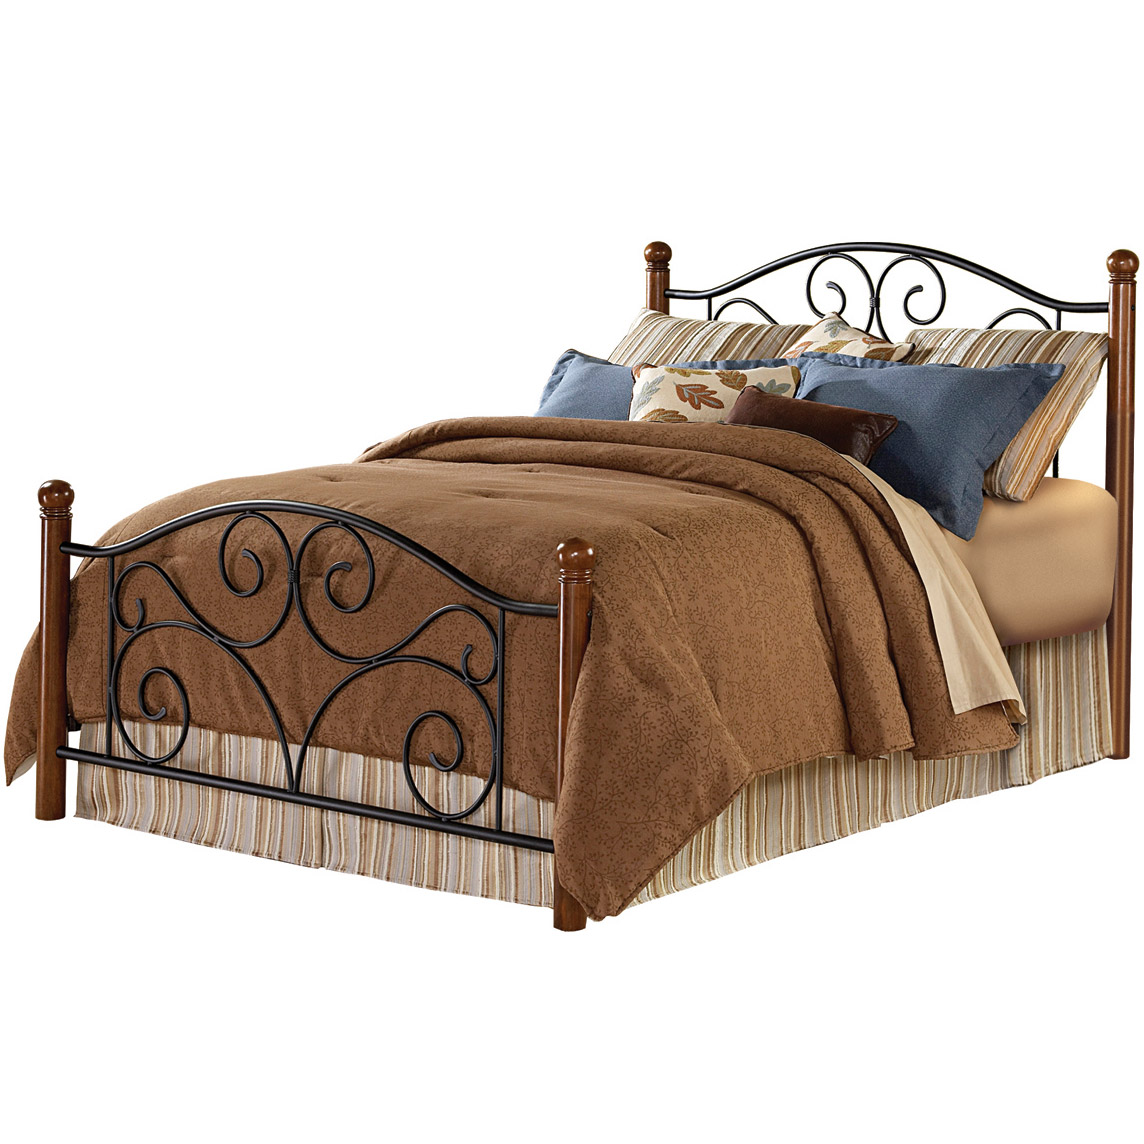 Doral Twin Bed